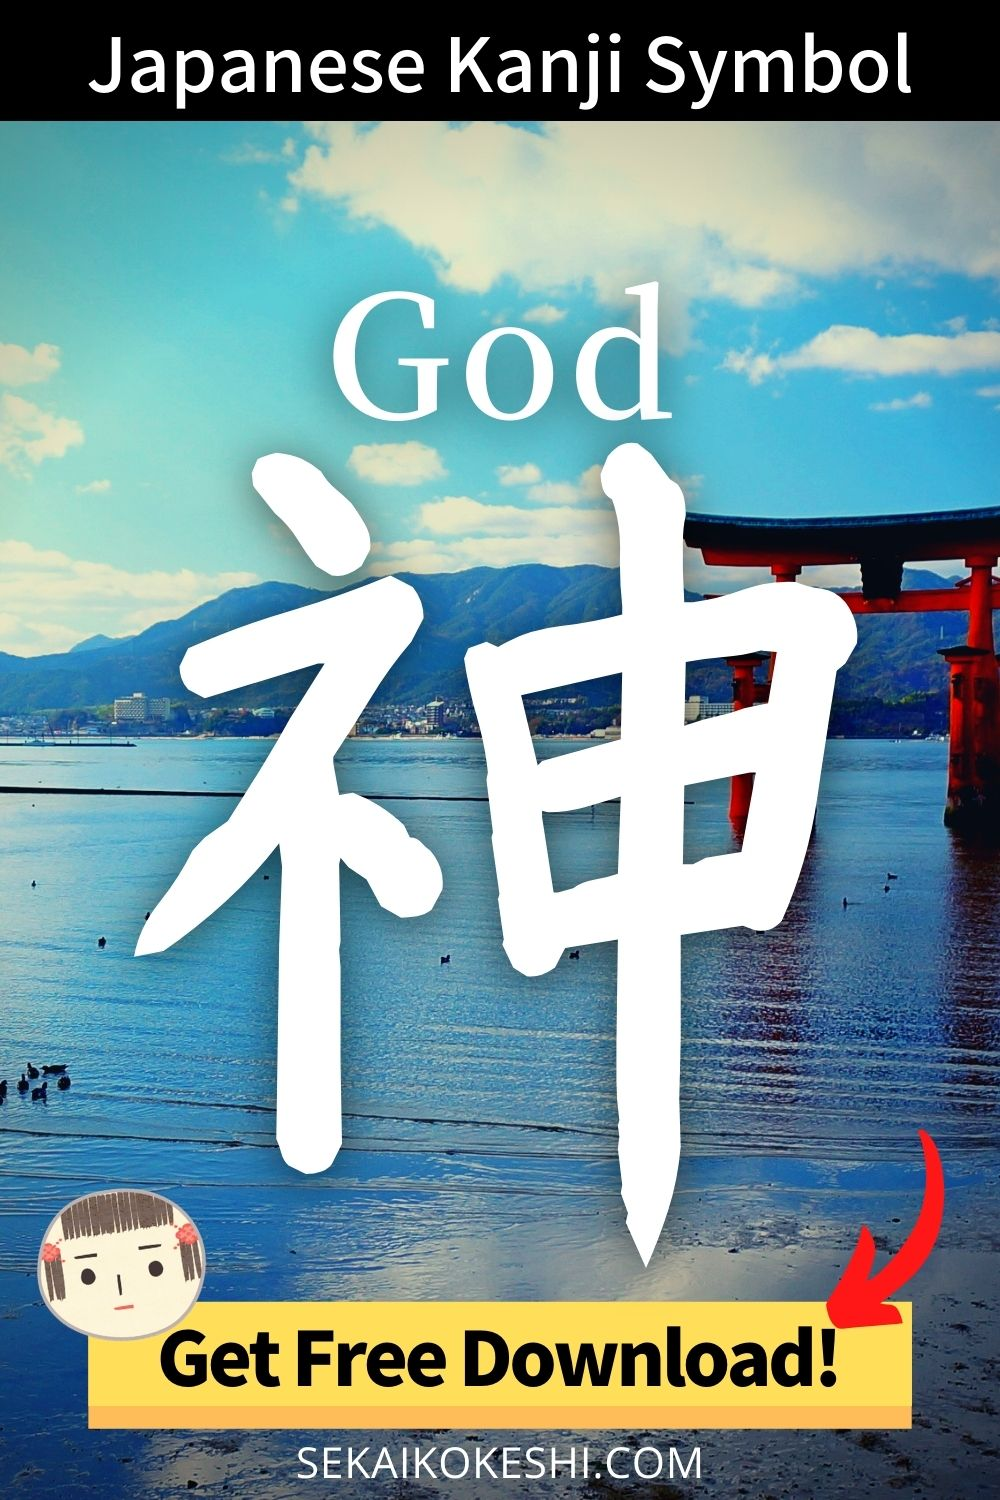 japanese kanji symbol, god, get free download!